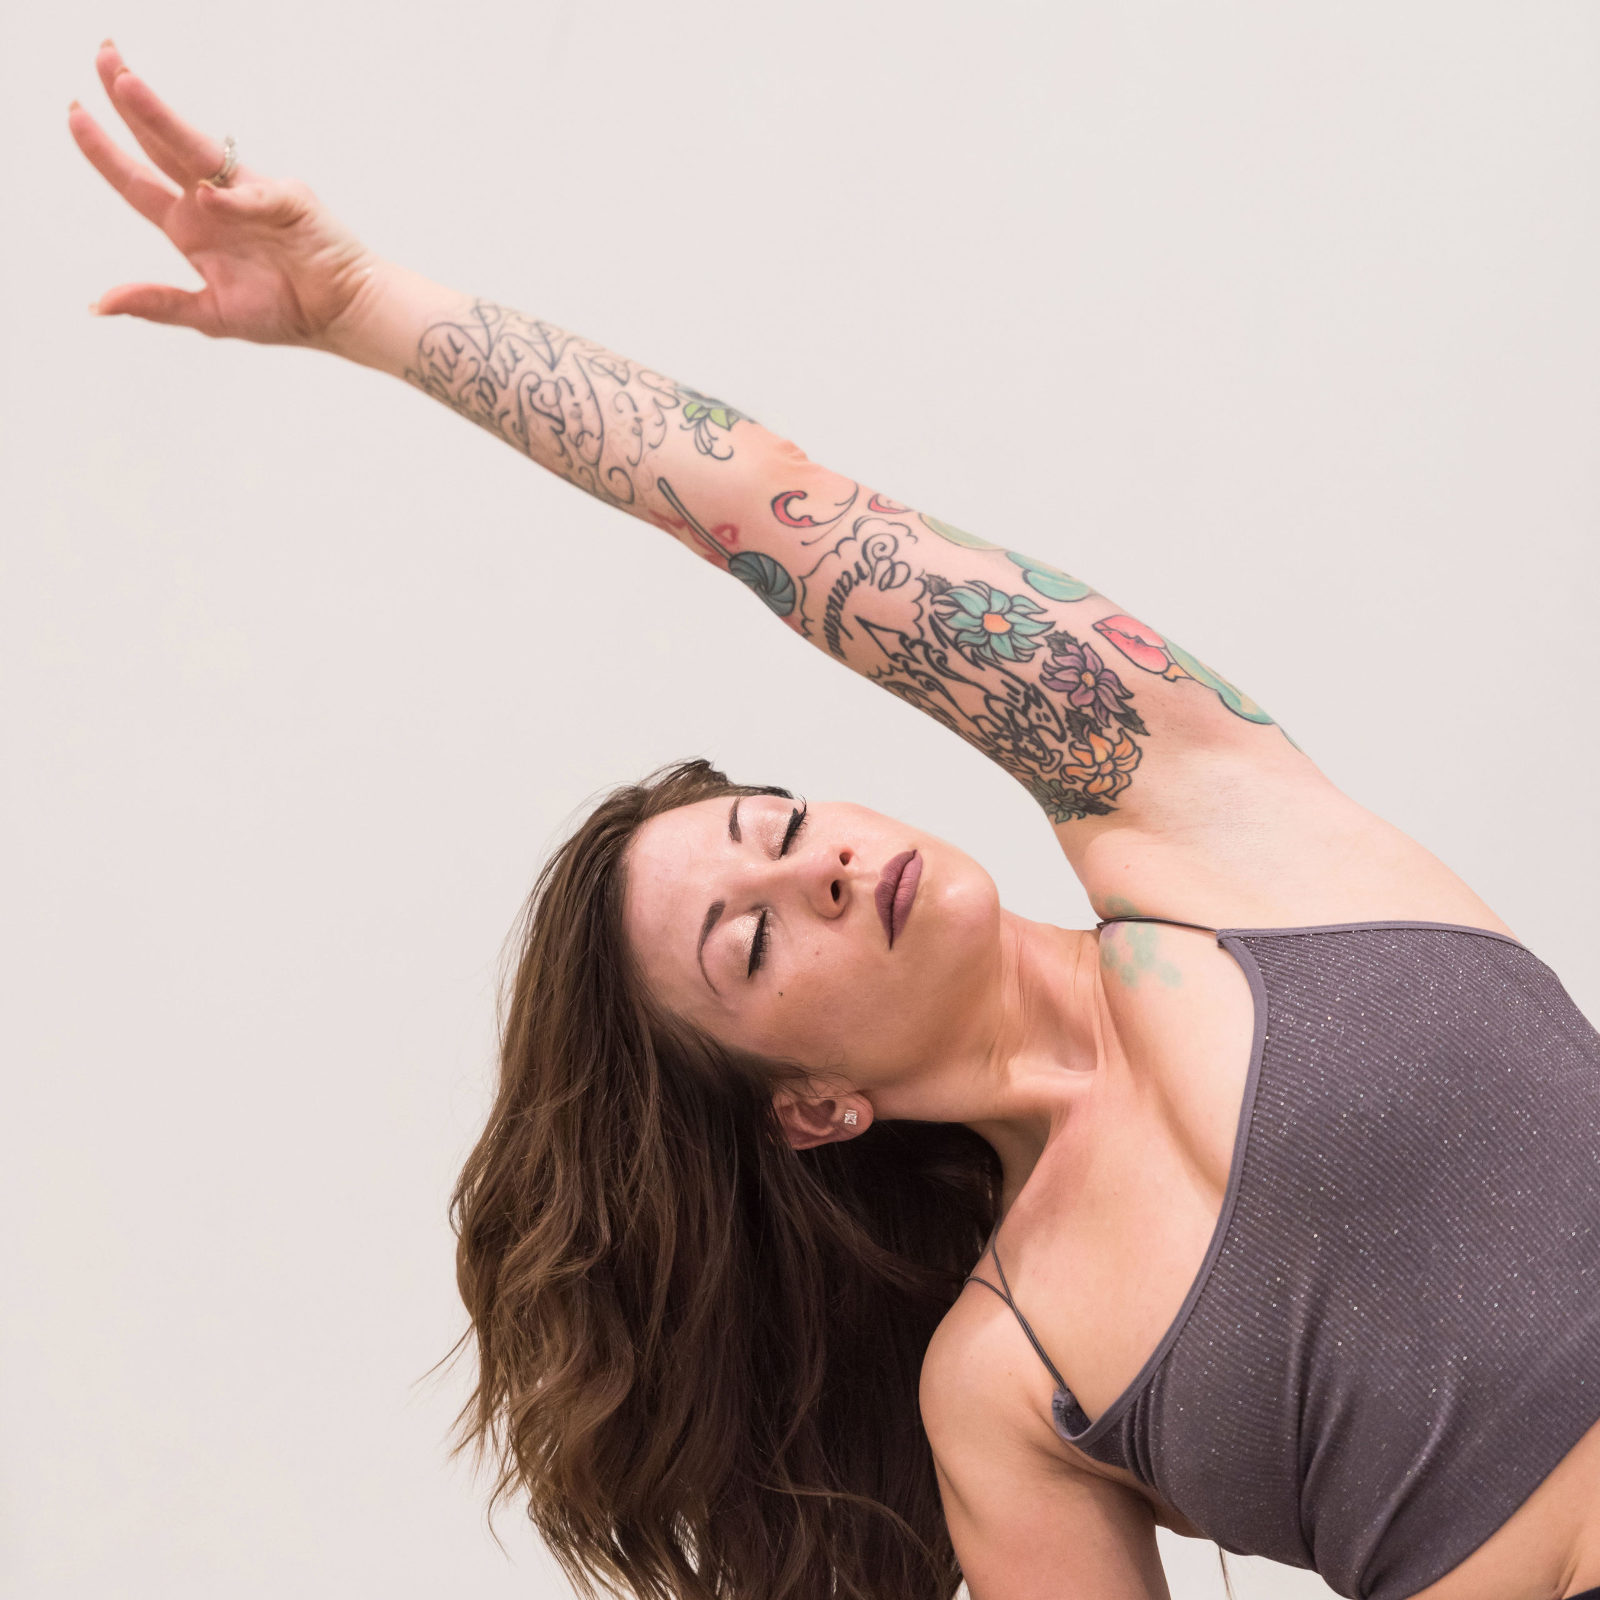 Brunette woman stretching for yoga pose during personal branding session at Fusion Yoga in Fort Wayne, Indiana